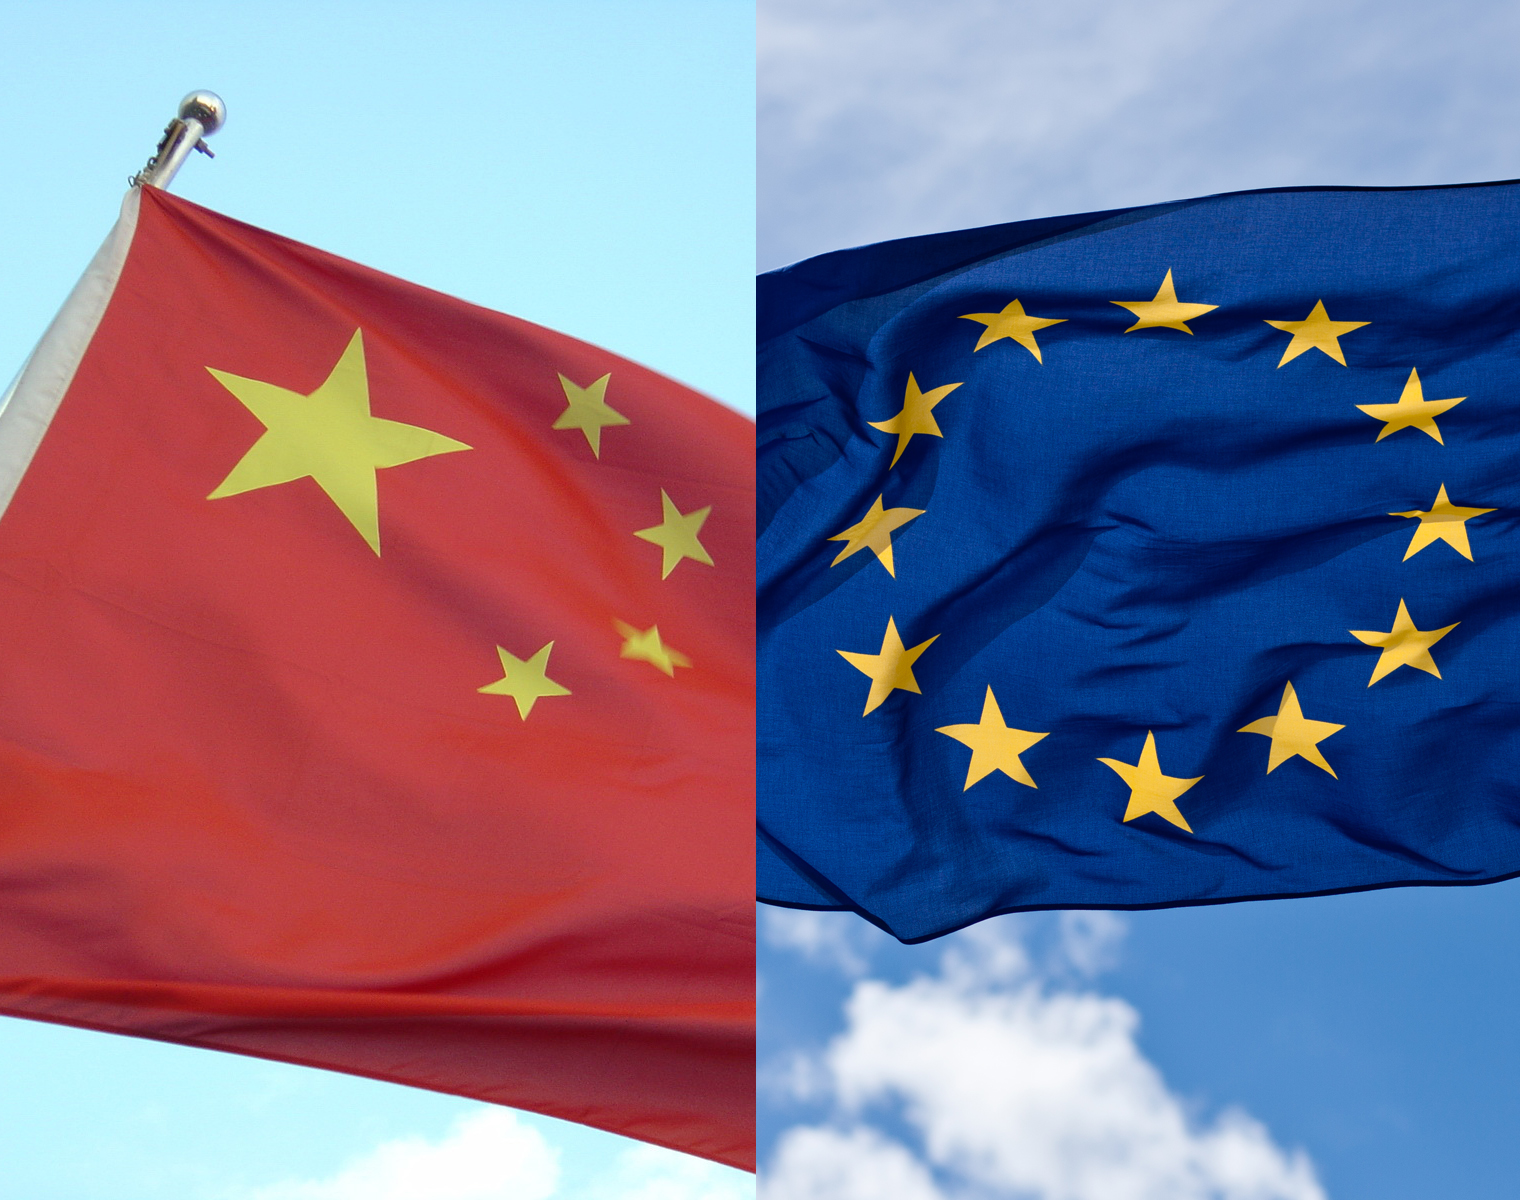 Europe's hesitance towards China's market economy status reframed